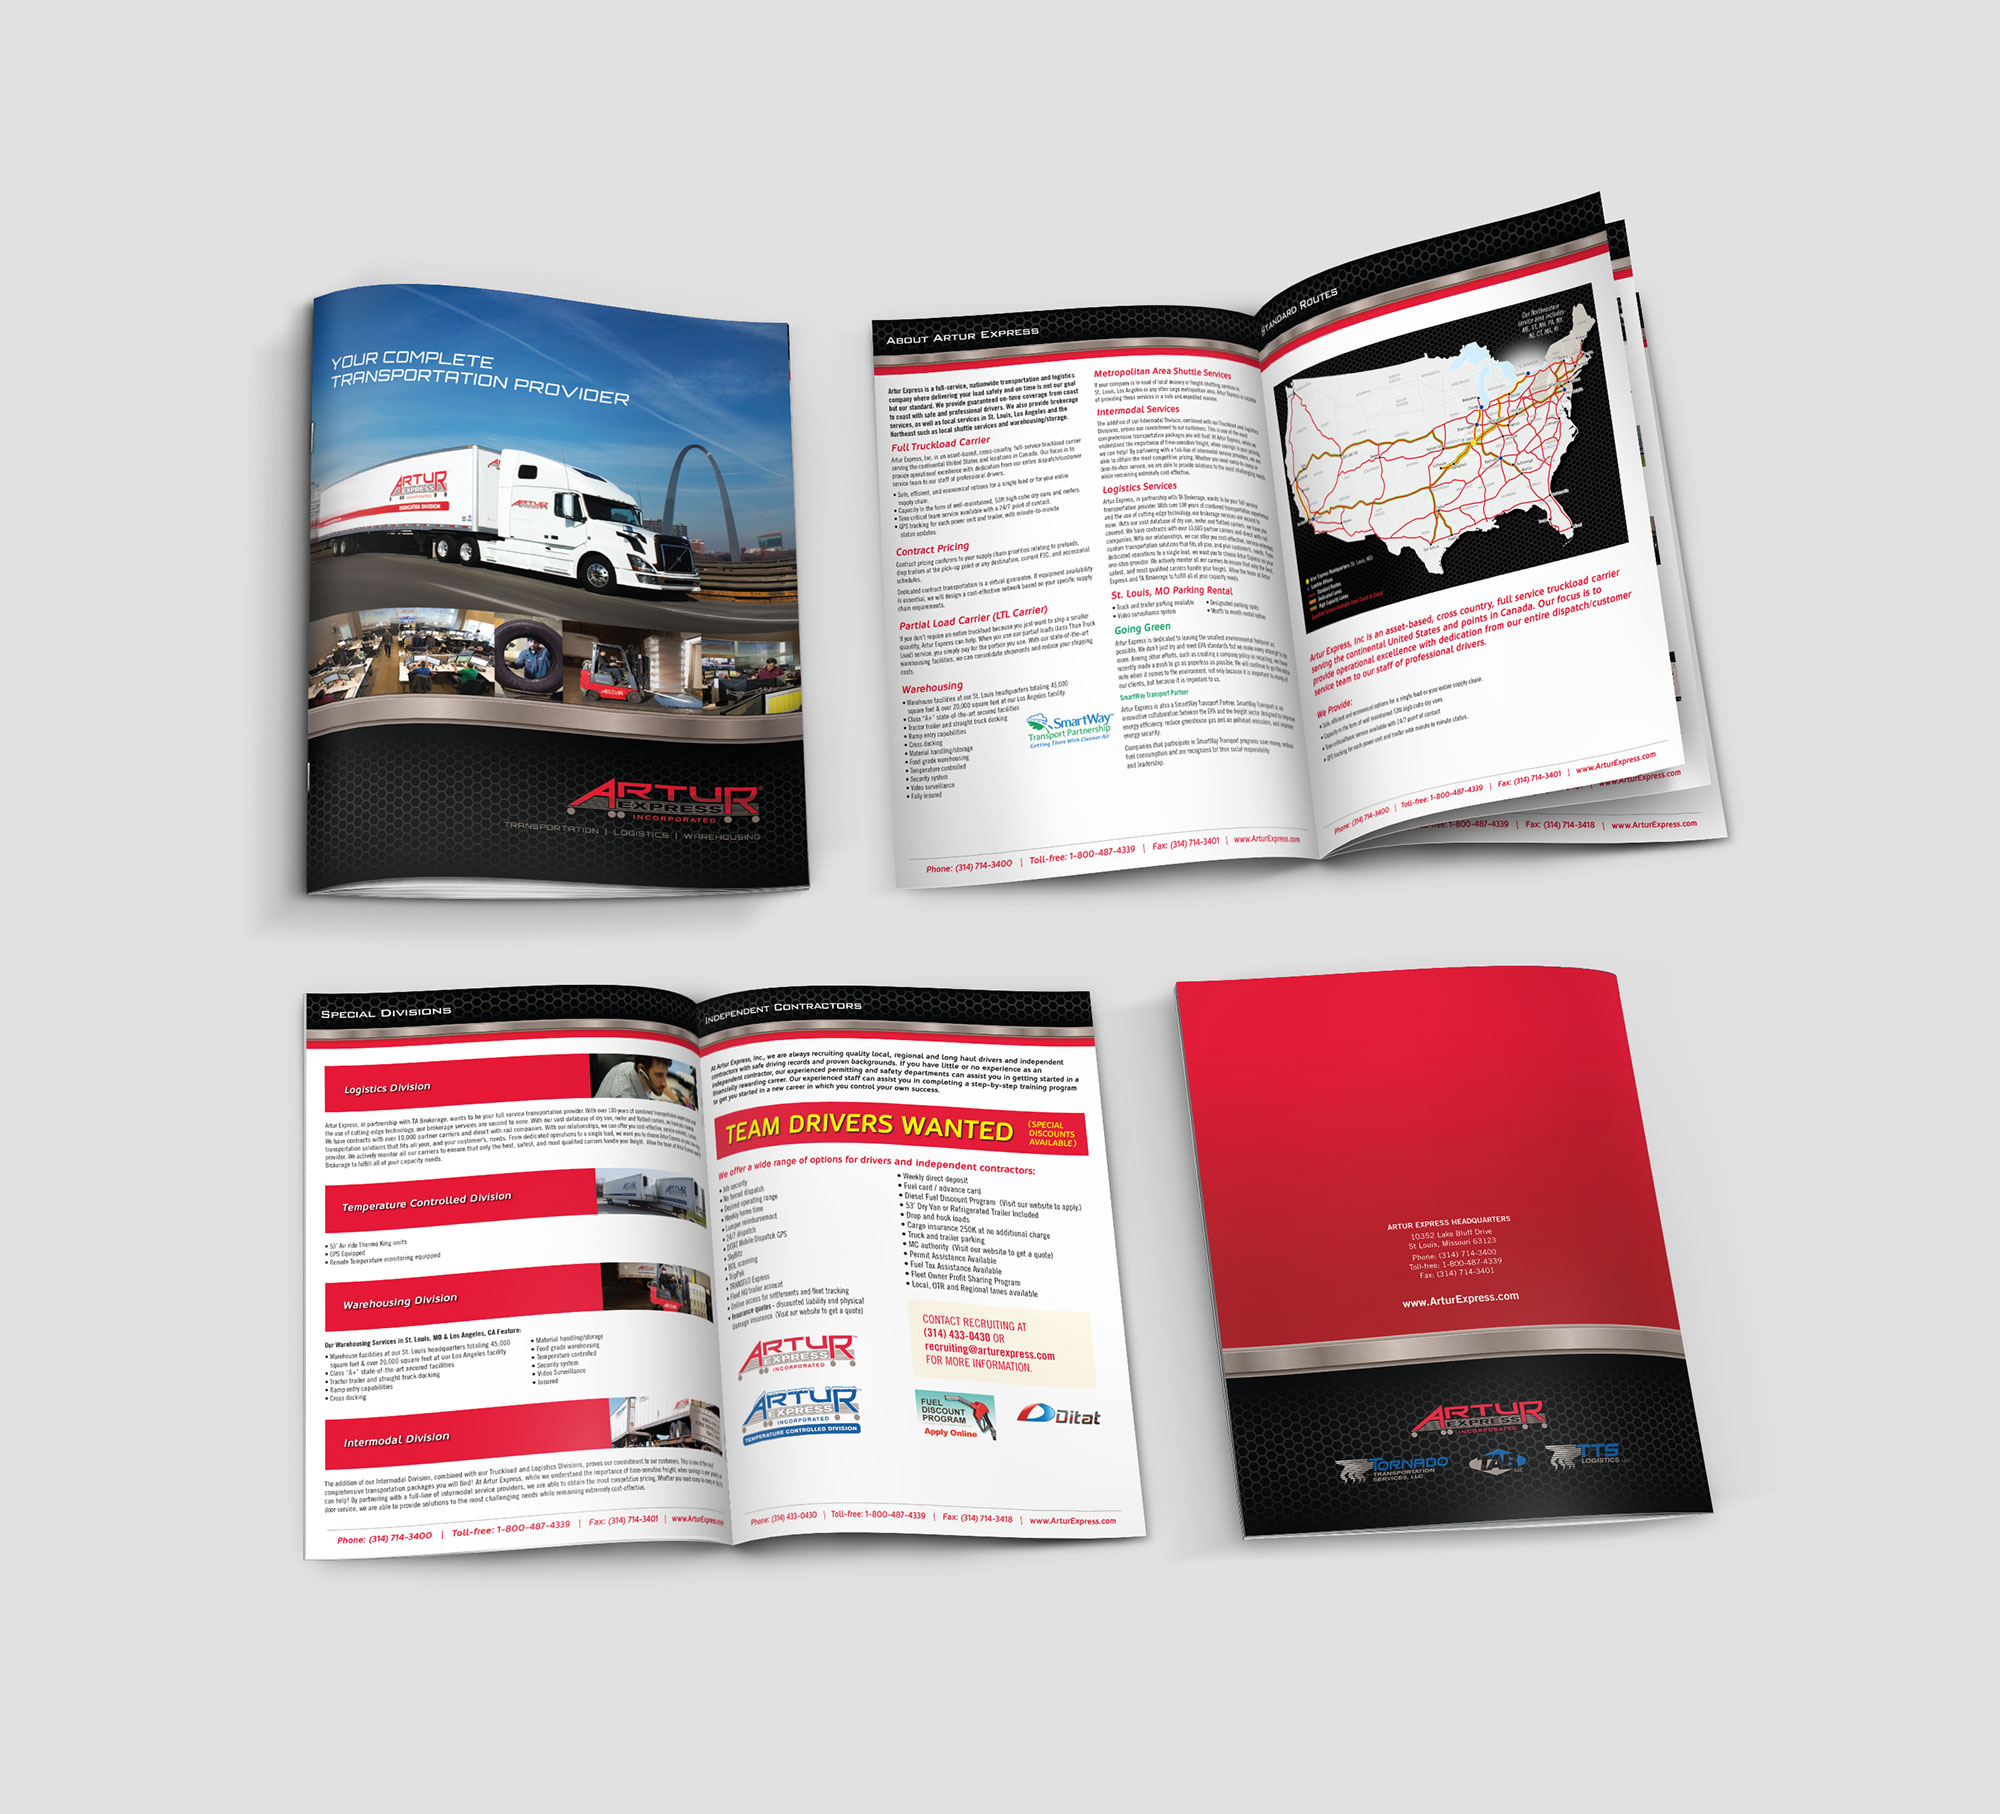 Artur brochure design